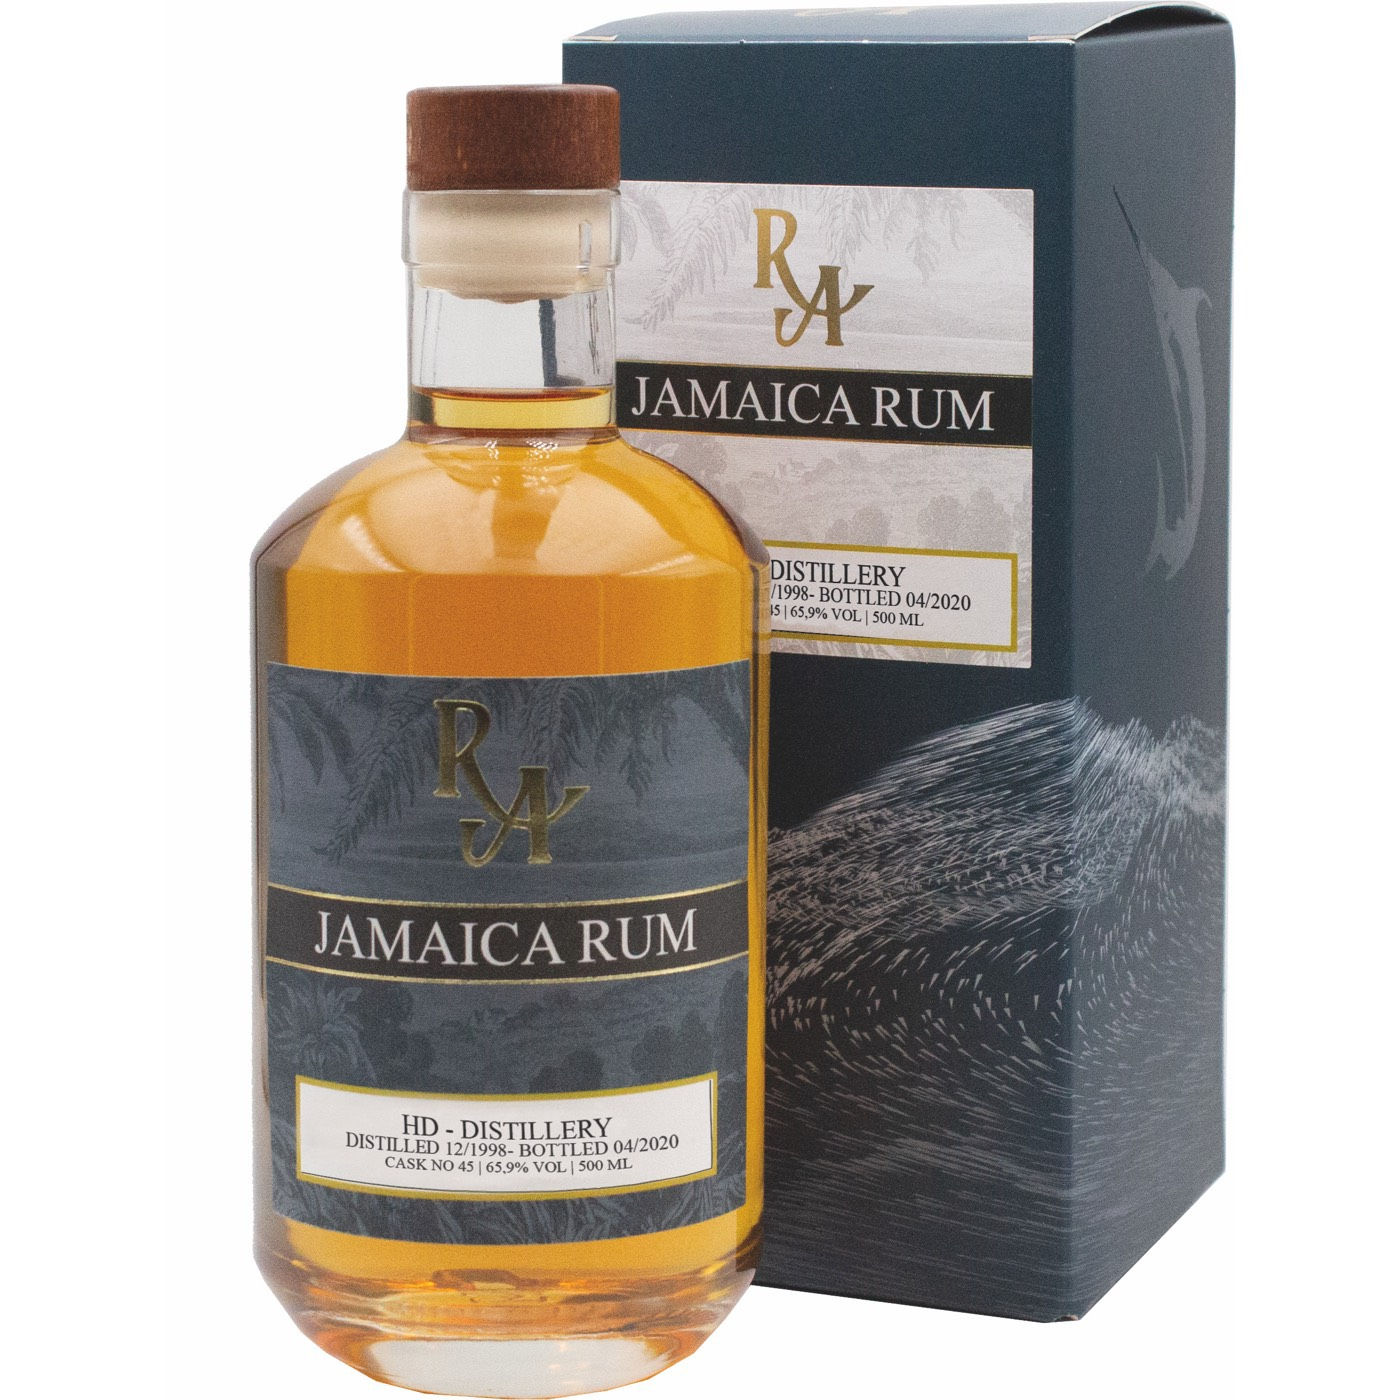 Bottle image of Rum Artesanal Jamaica Rum HLCF